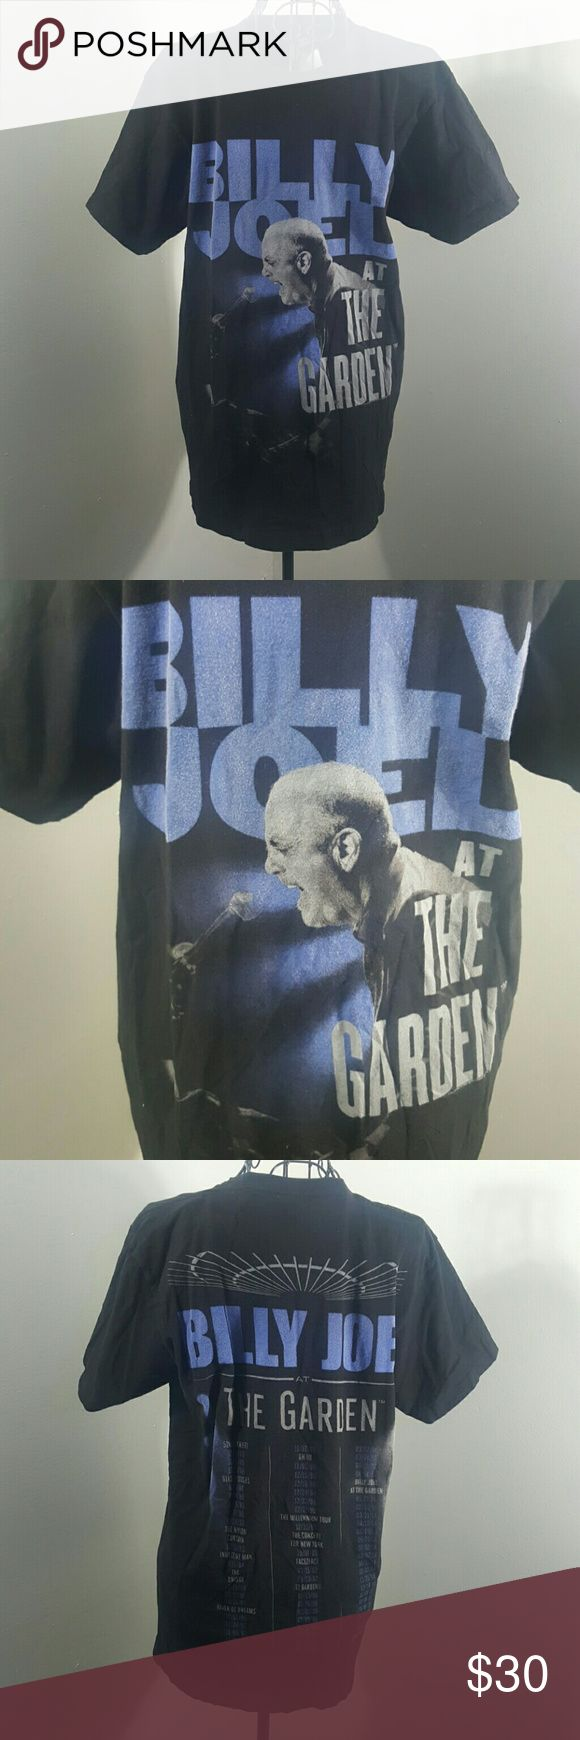 BILLY JOEL CONCERT T SHIRT medium BILLY JOEL VINTAGE  CONCERT T  SHIRT PREOWNED AWESOME SHIRT RARE Vintage Shirts Tees - Short Sleeve